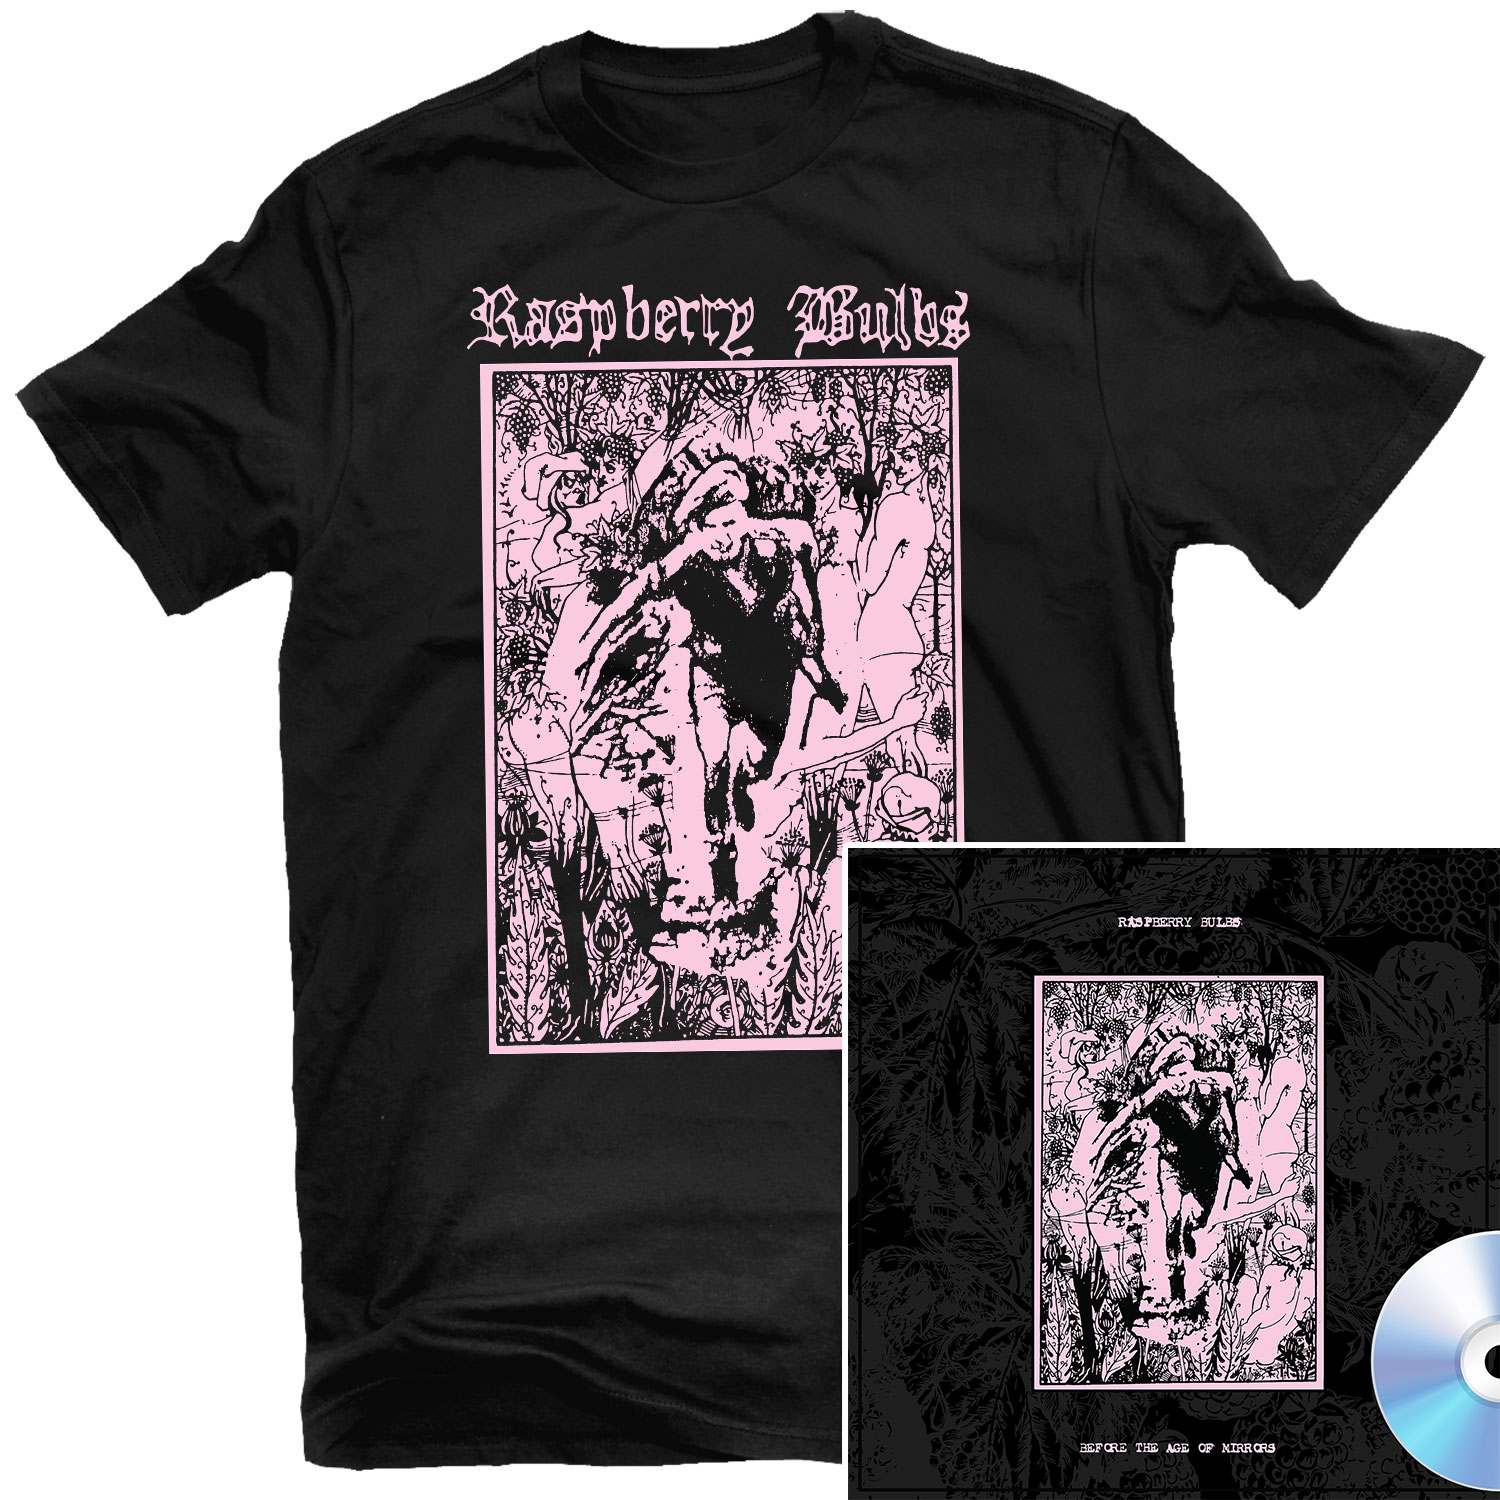 Before The Age Of Mirrors T Shirt + CD Bundle